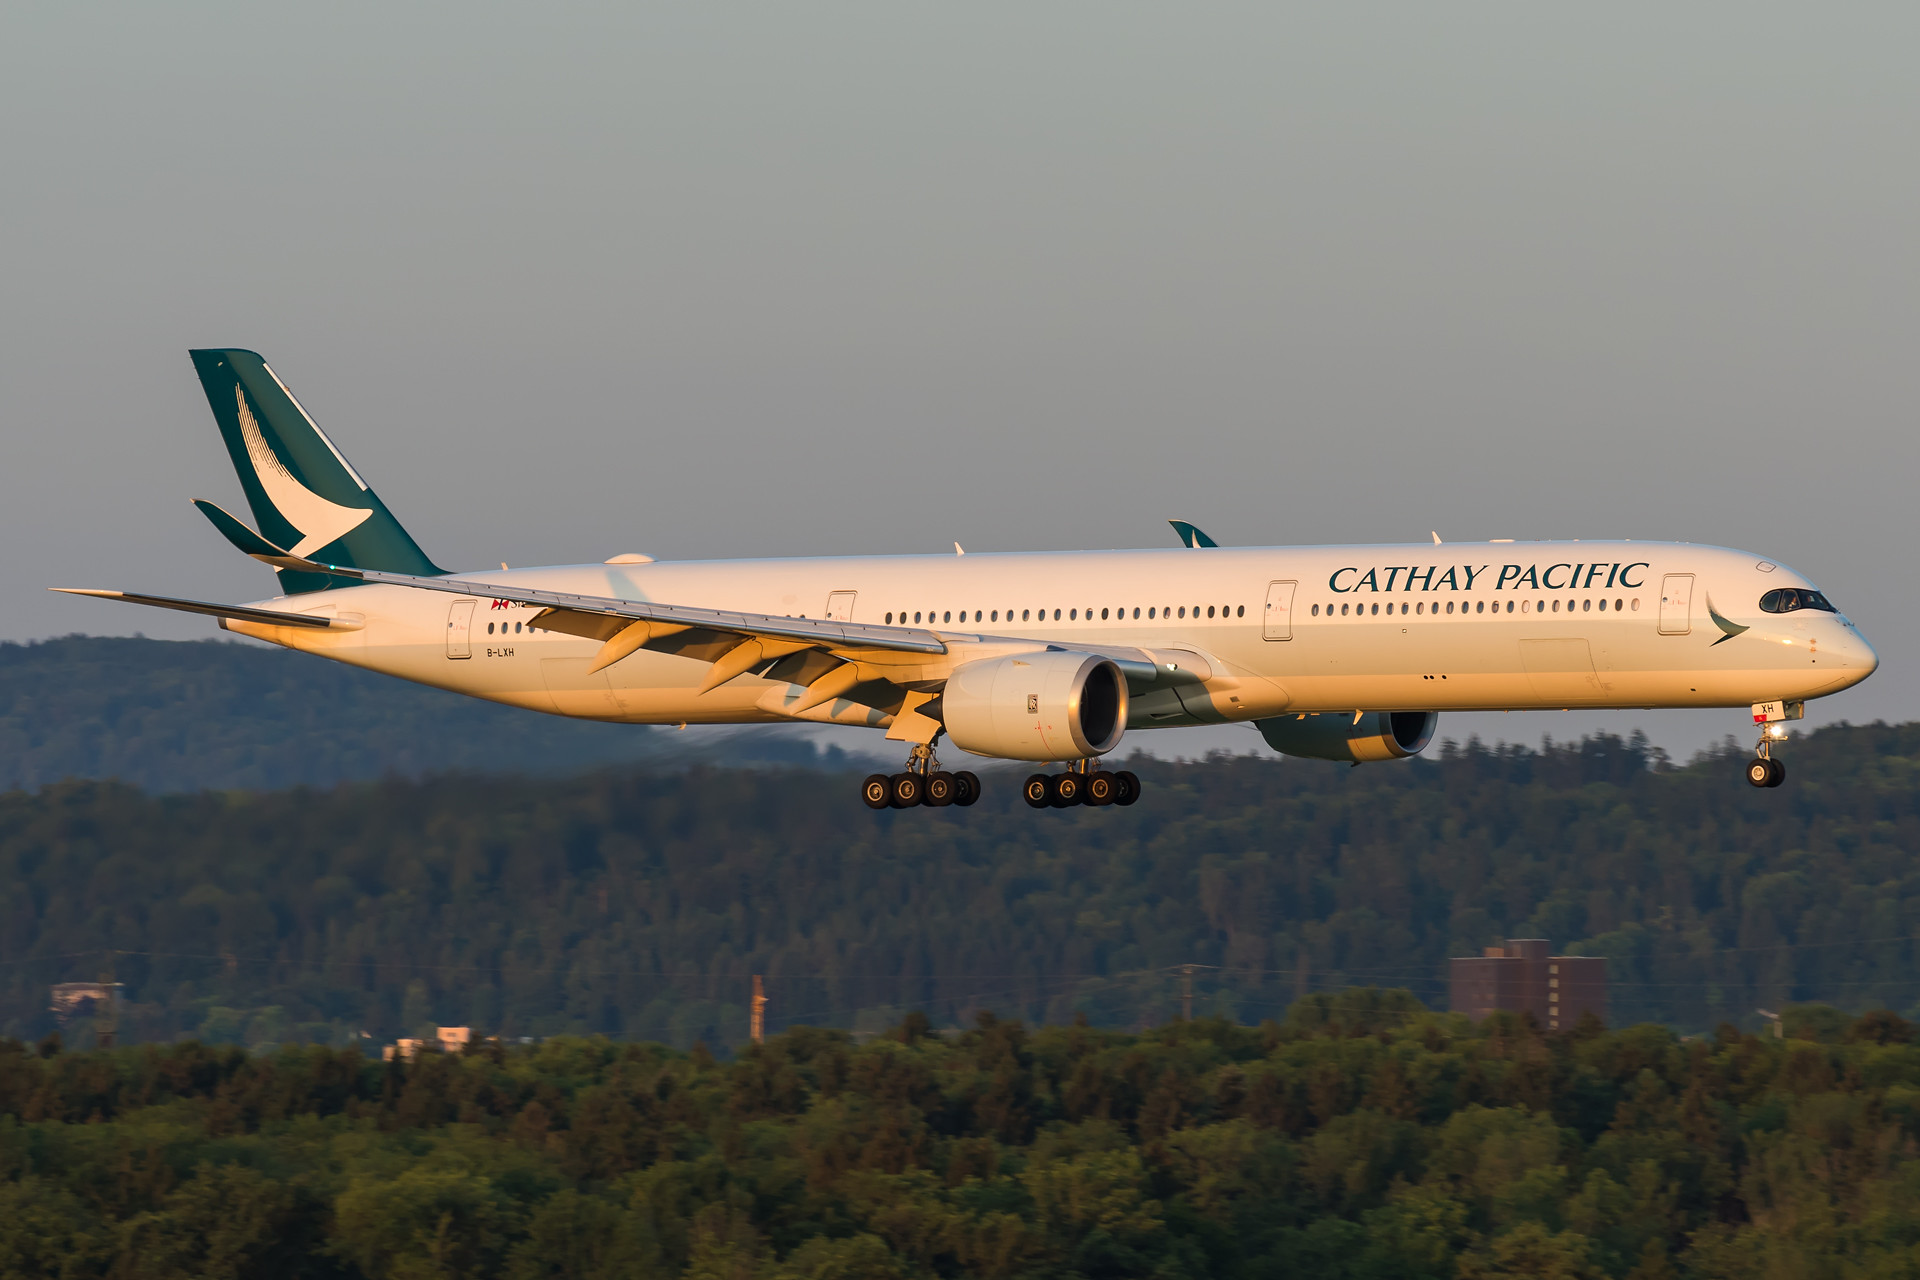 Cathay Pacific Airbus A350-1041 B-LXH